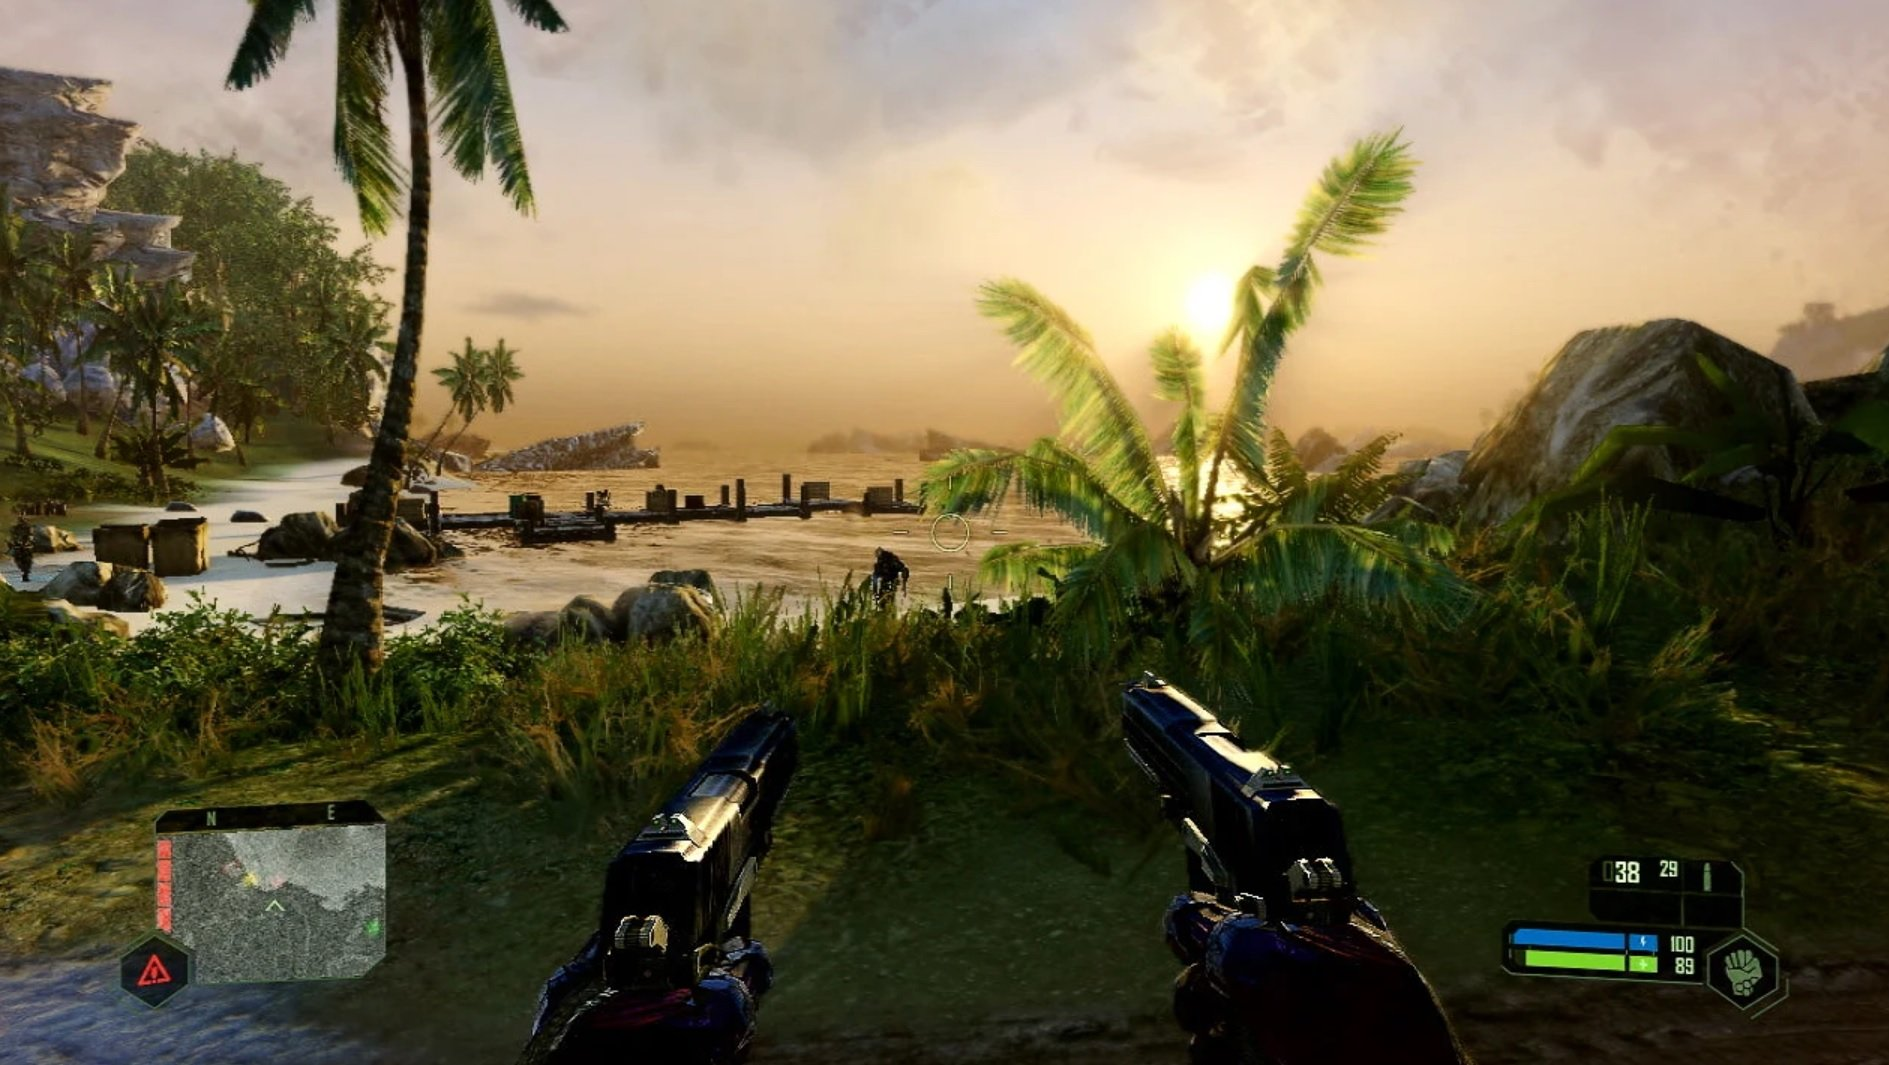 Crysis Remastered Nintendo Switch review